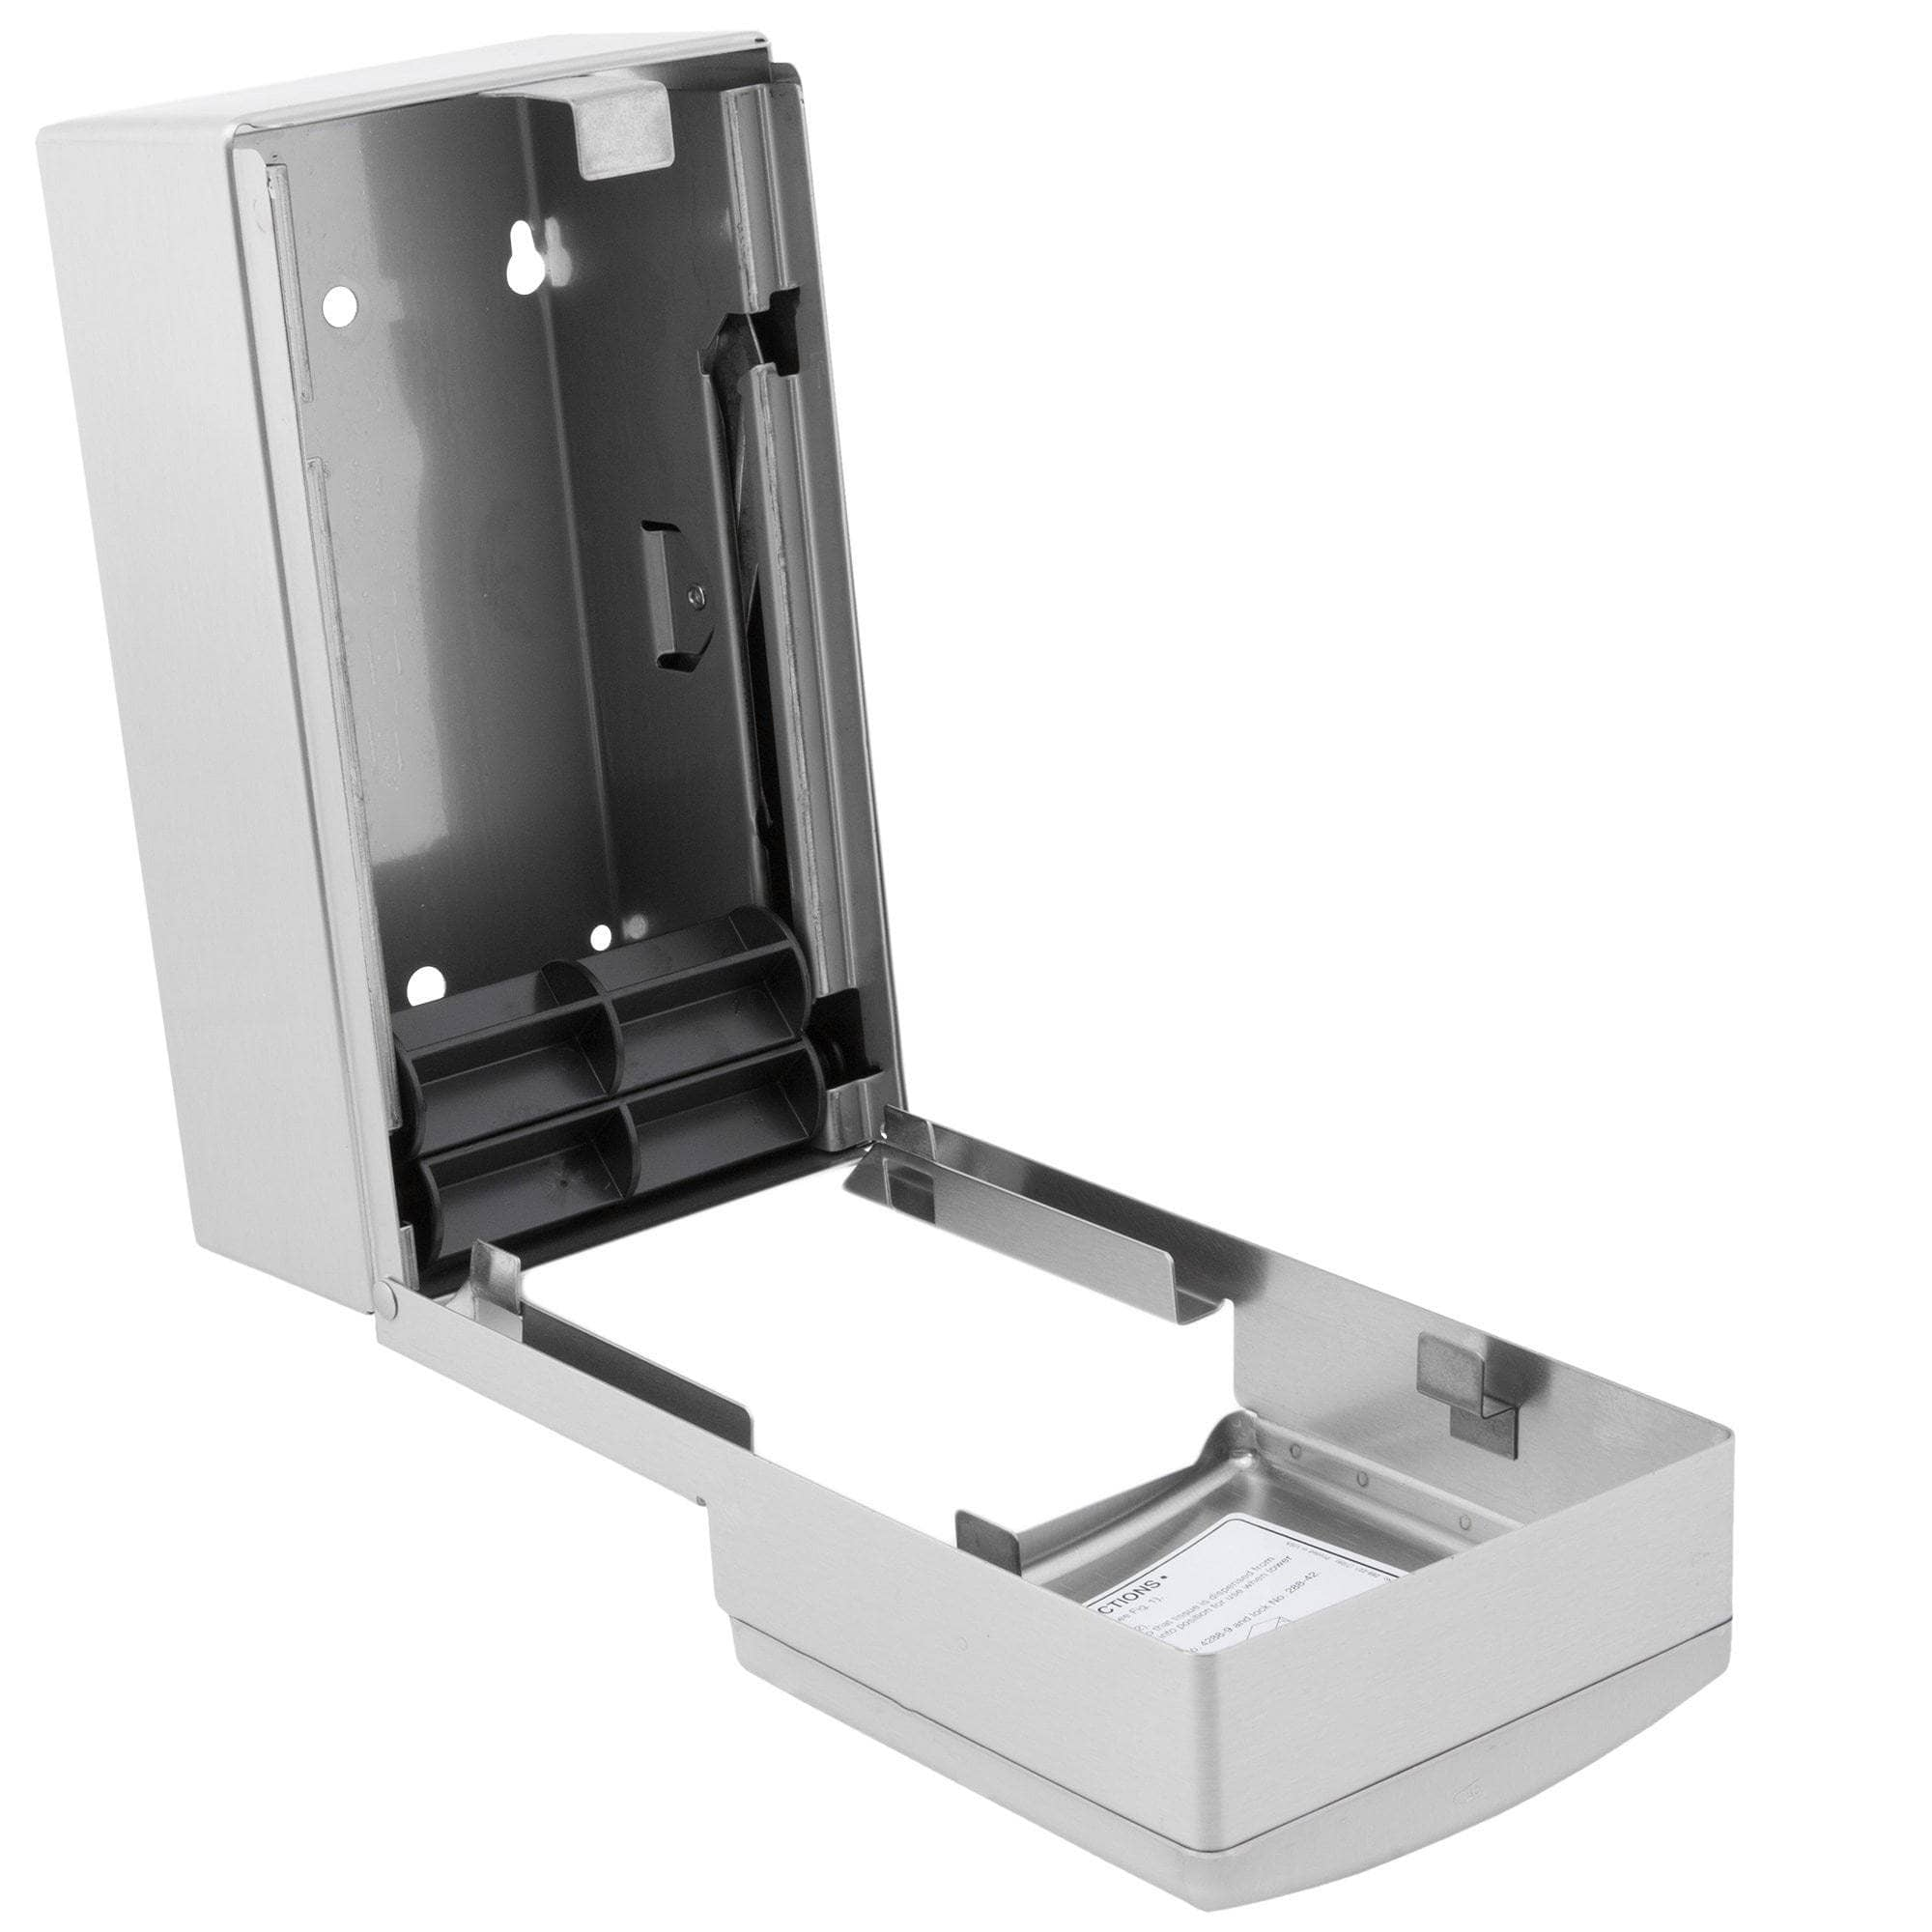 Bobrick B-4288 Commercial Toilet Paper Dispenser, Surface-Mounted, Stainless Steel w/ Satin Finish - TotalRestroom.com